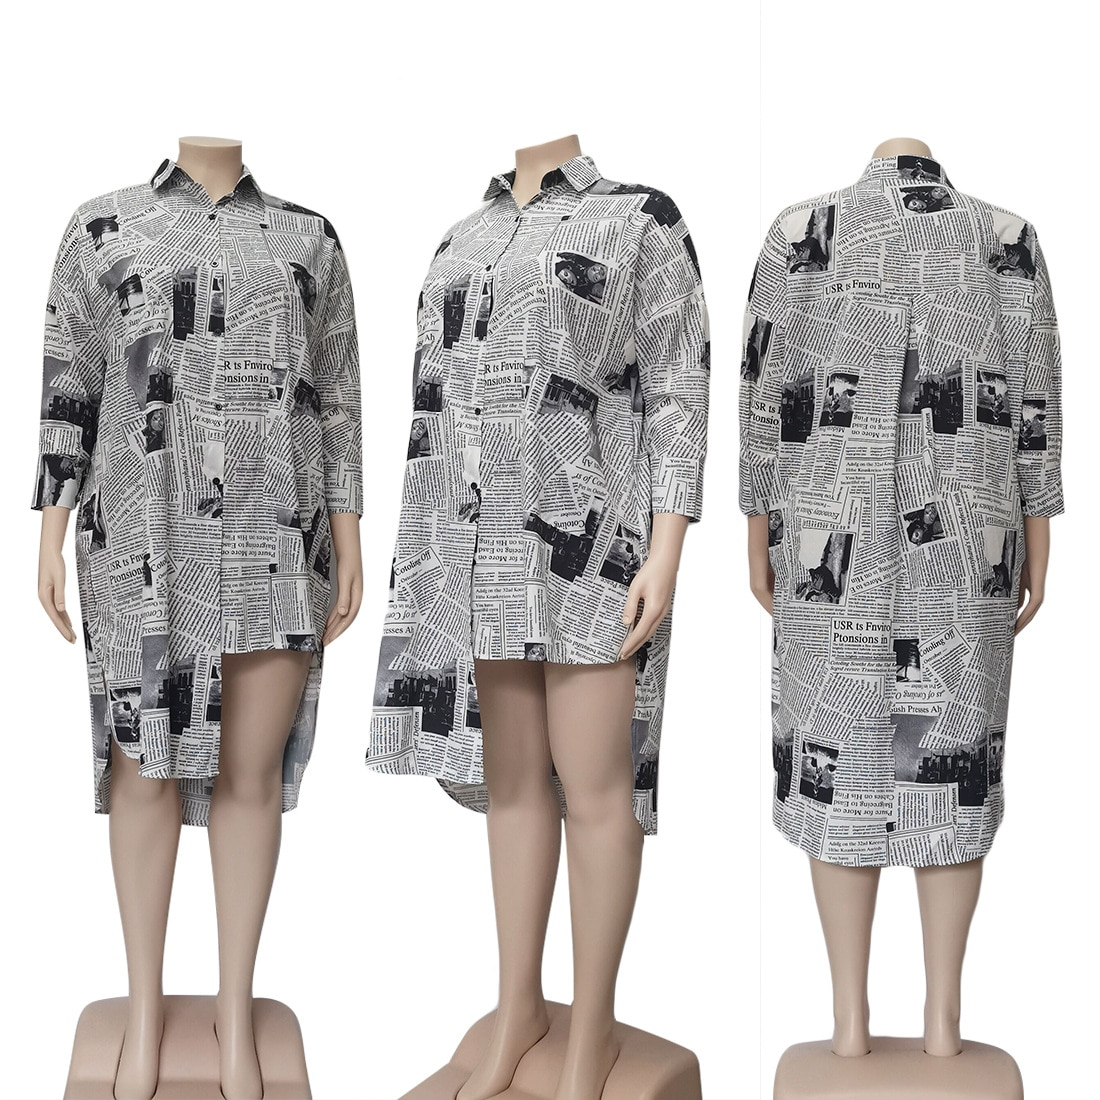 Coolhappy 2021 Plus SizeSpring Casual Newspaper Printed White Loose Shirt Blouse Women Clothes Long Sleeve Vintage Party Dress Dresses  6